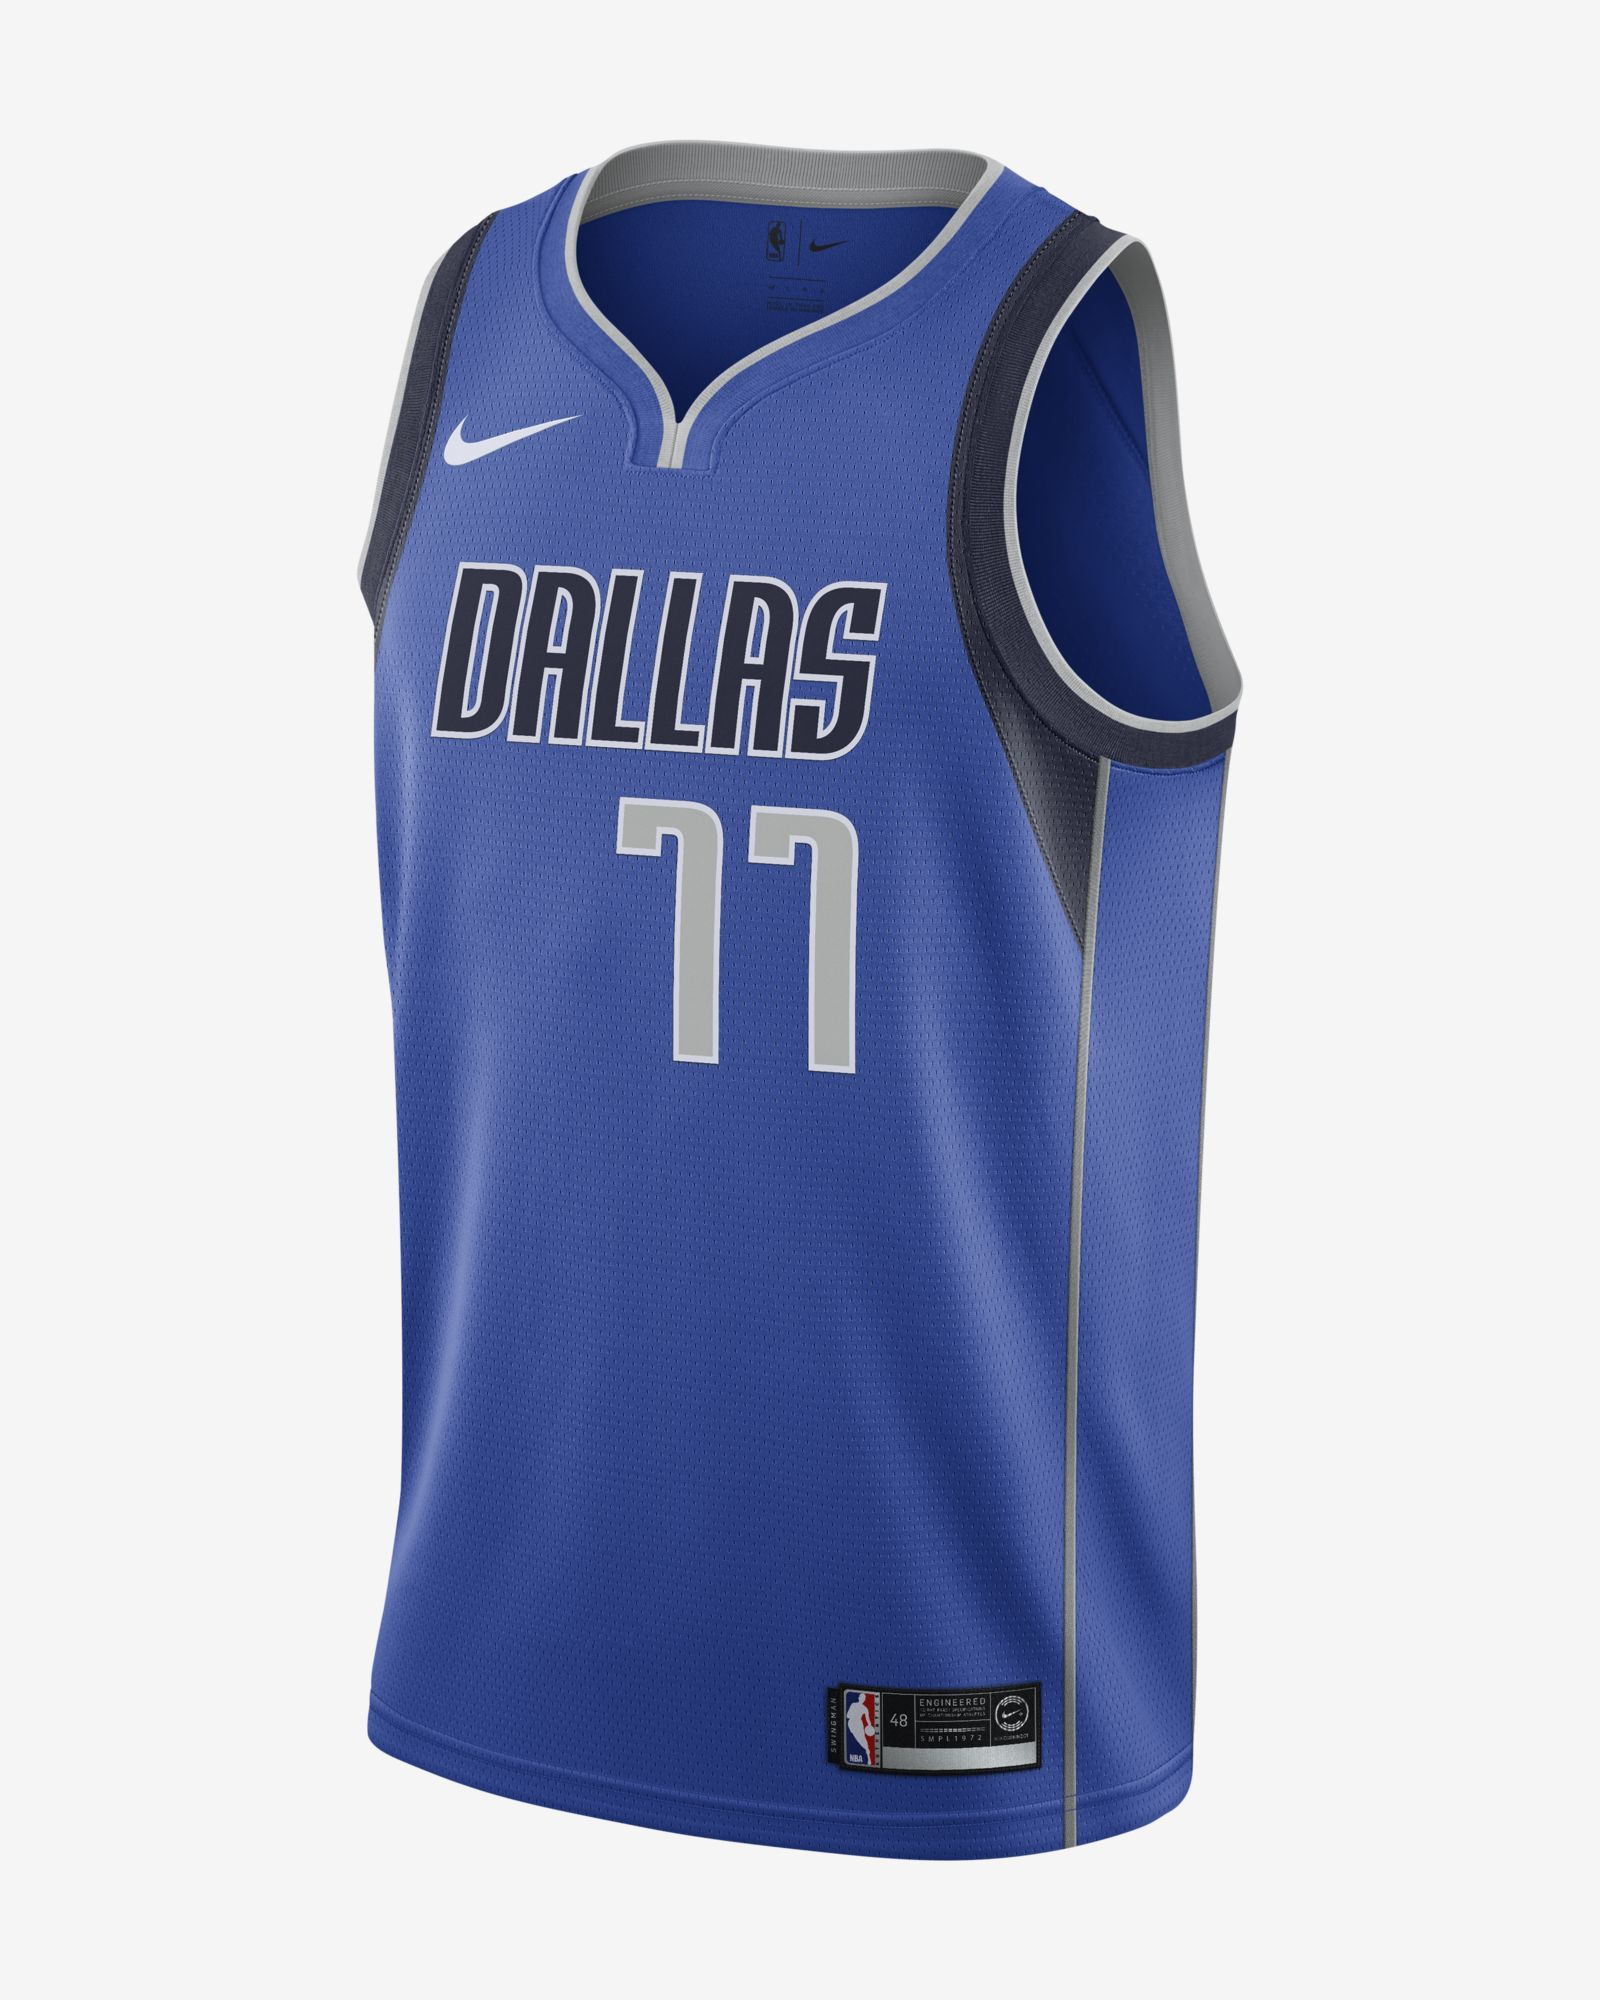 fccd8a744e5 Nike NBA Dallas Mavericks Luka Doncic Icon Edition Swingman Jersey - NBA  Shop Dallas Mavericks Merchandise - Superfanas.lt